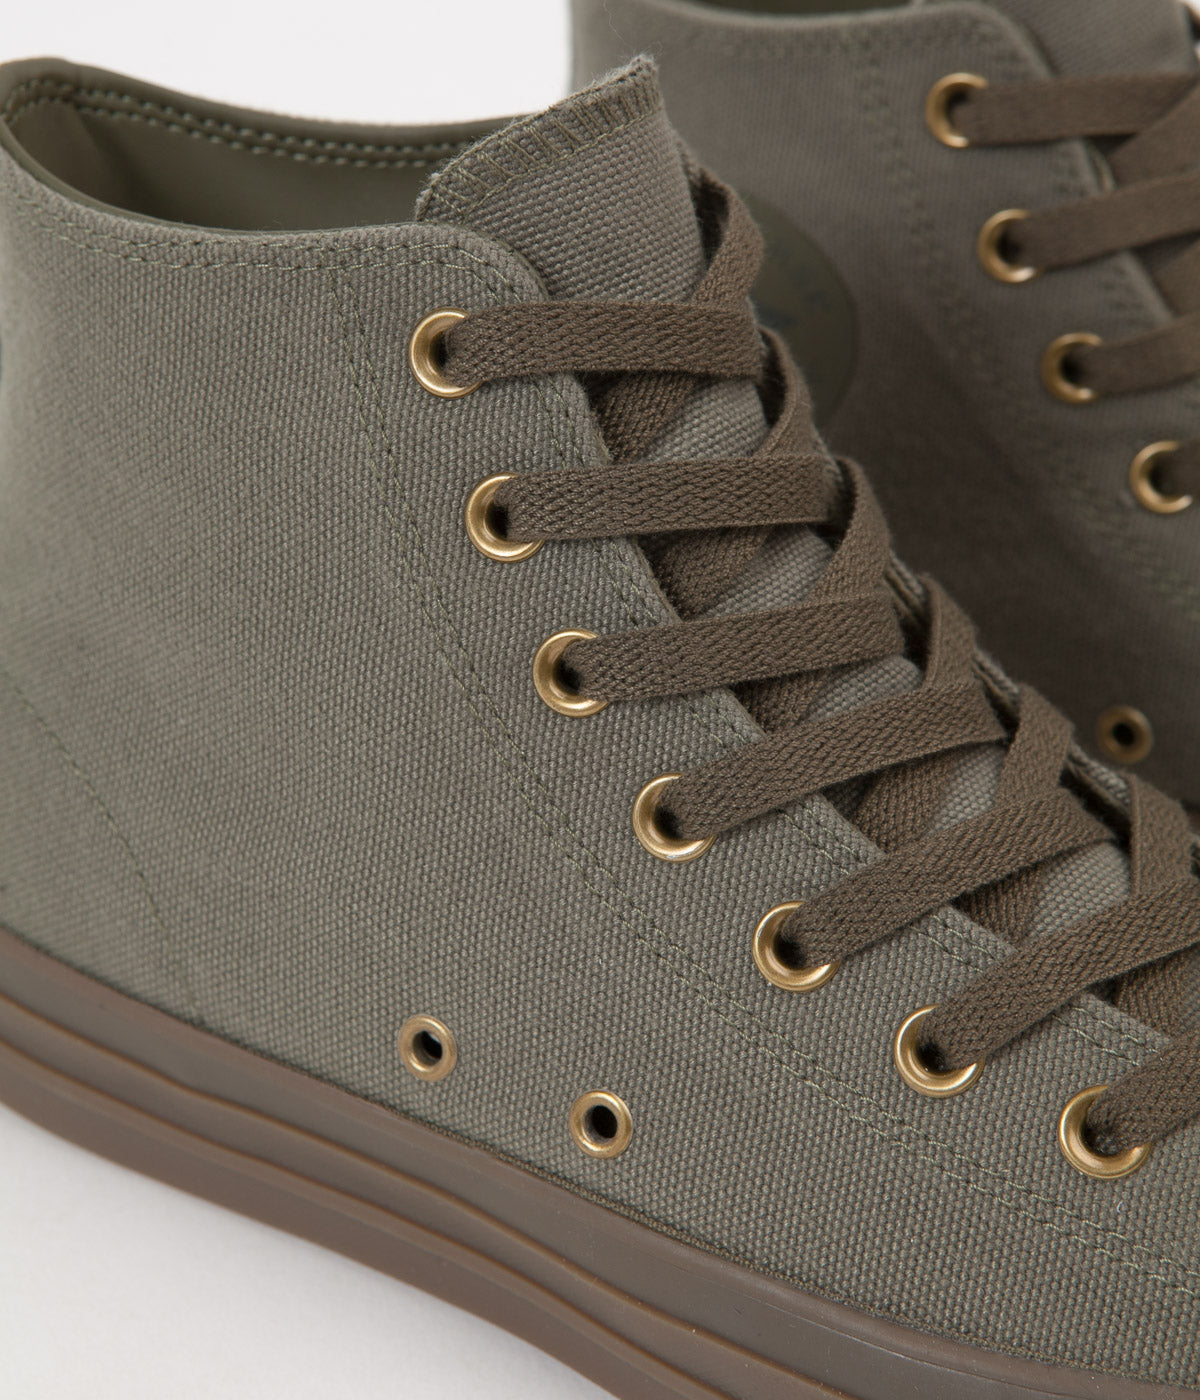 880c9da6fcef22 ... Converse CTAS Pro Hi Kevin Rodrigues Shoes - Medium Olive   Collard    Gum ...